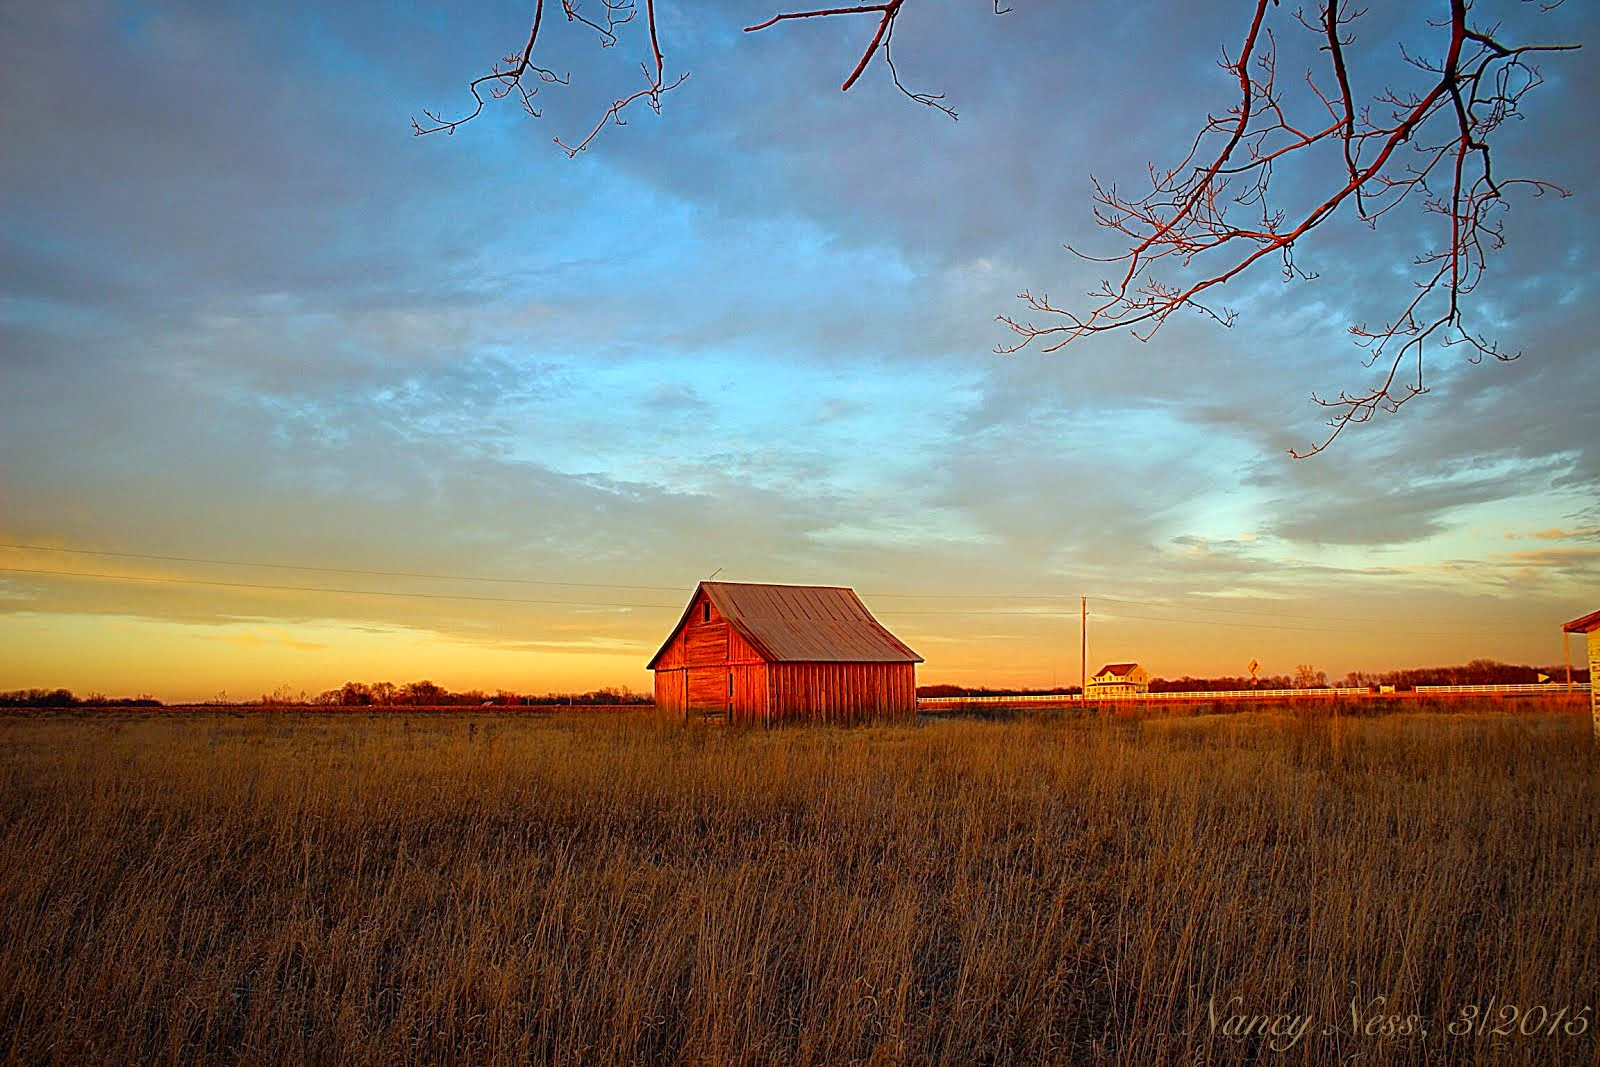 ALONE ON THE PRAIRIE, photo by Nancy Ness, 4\2015